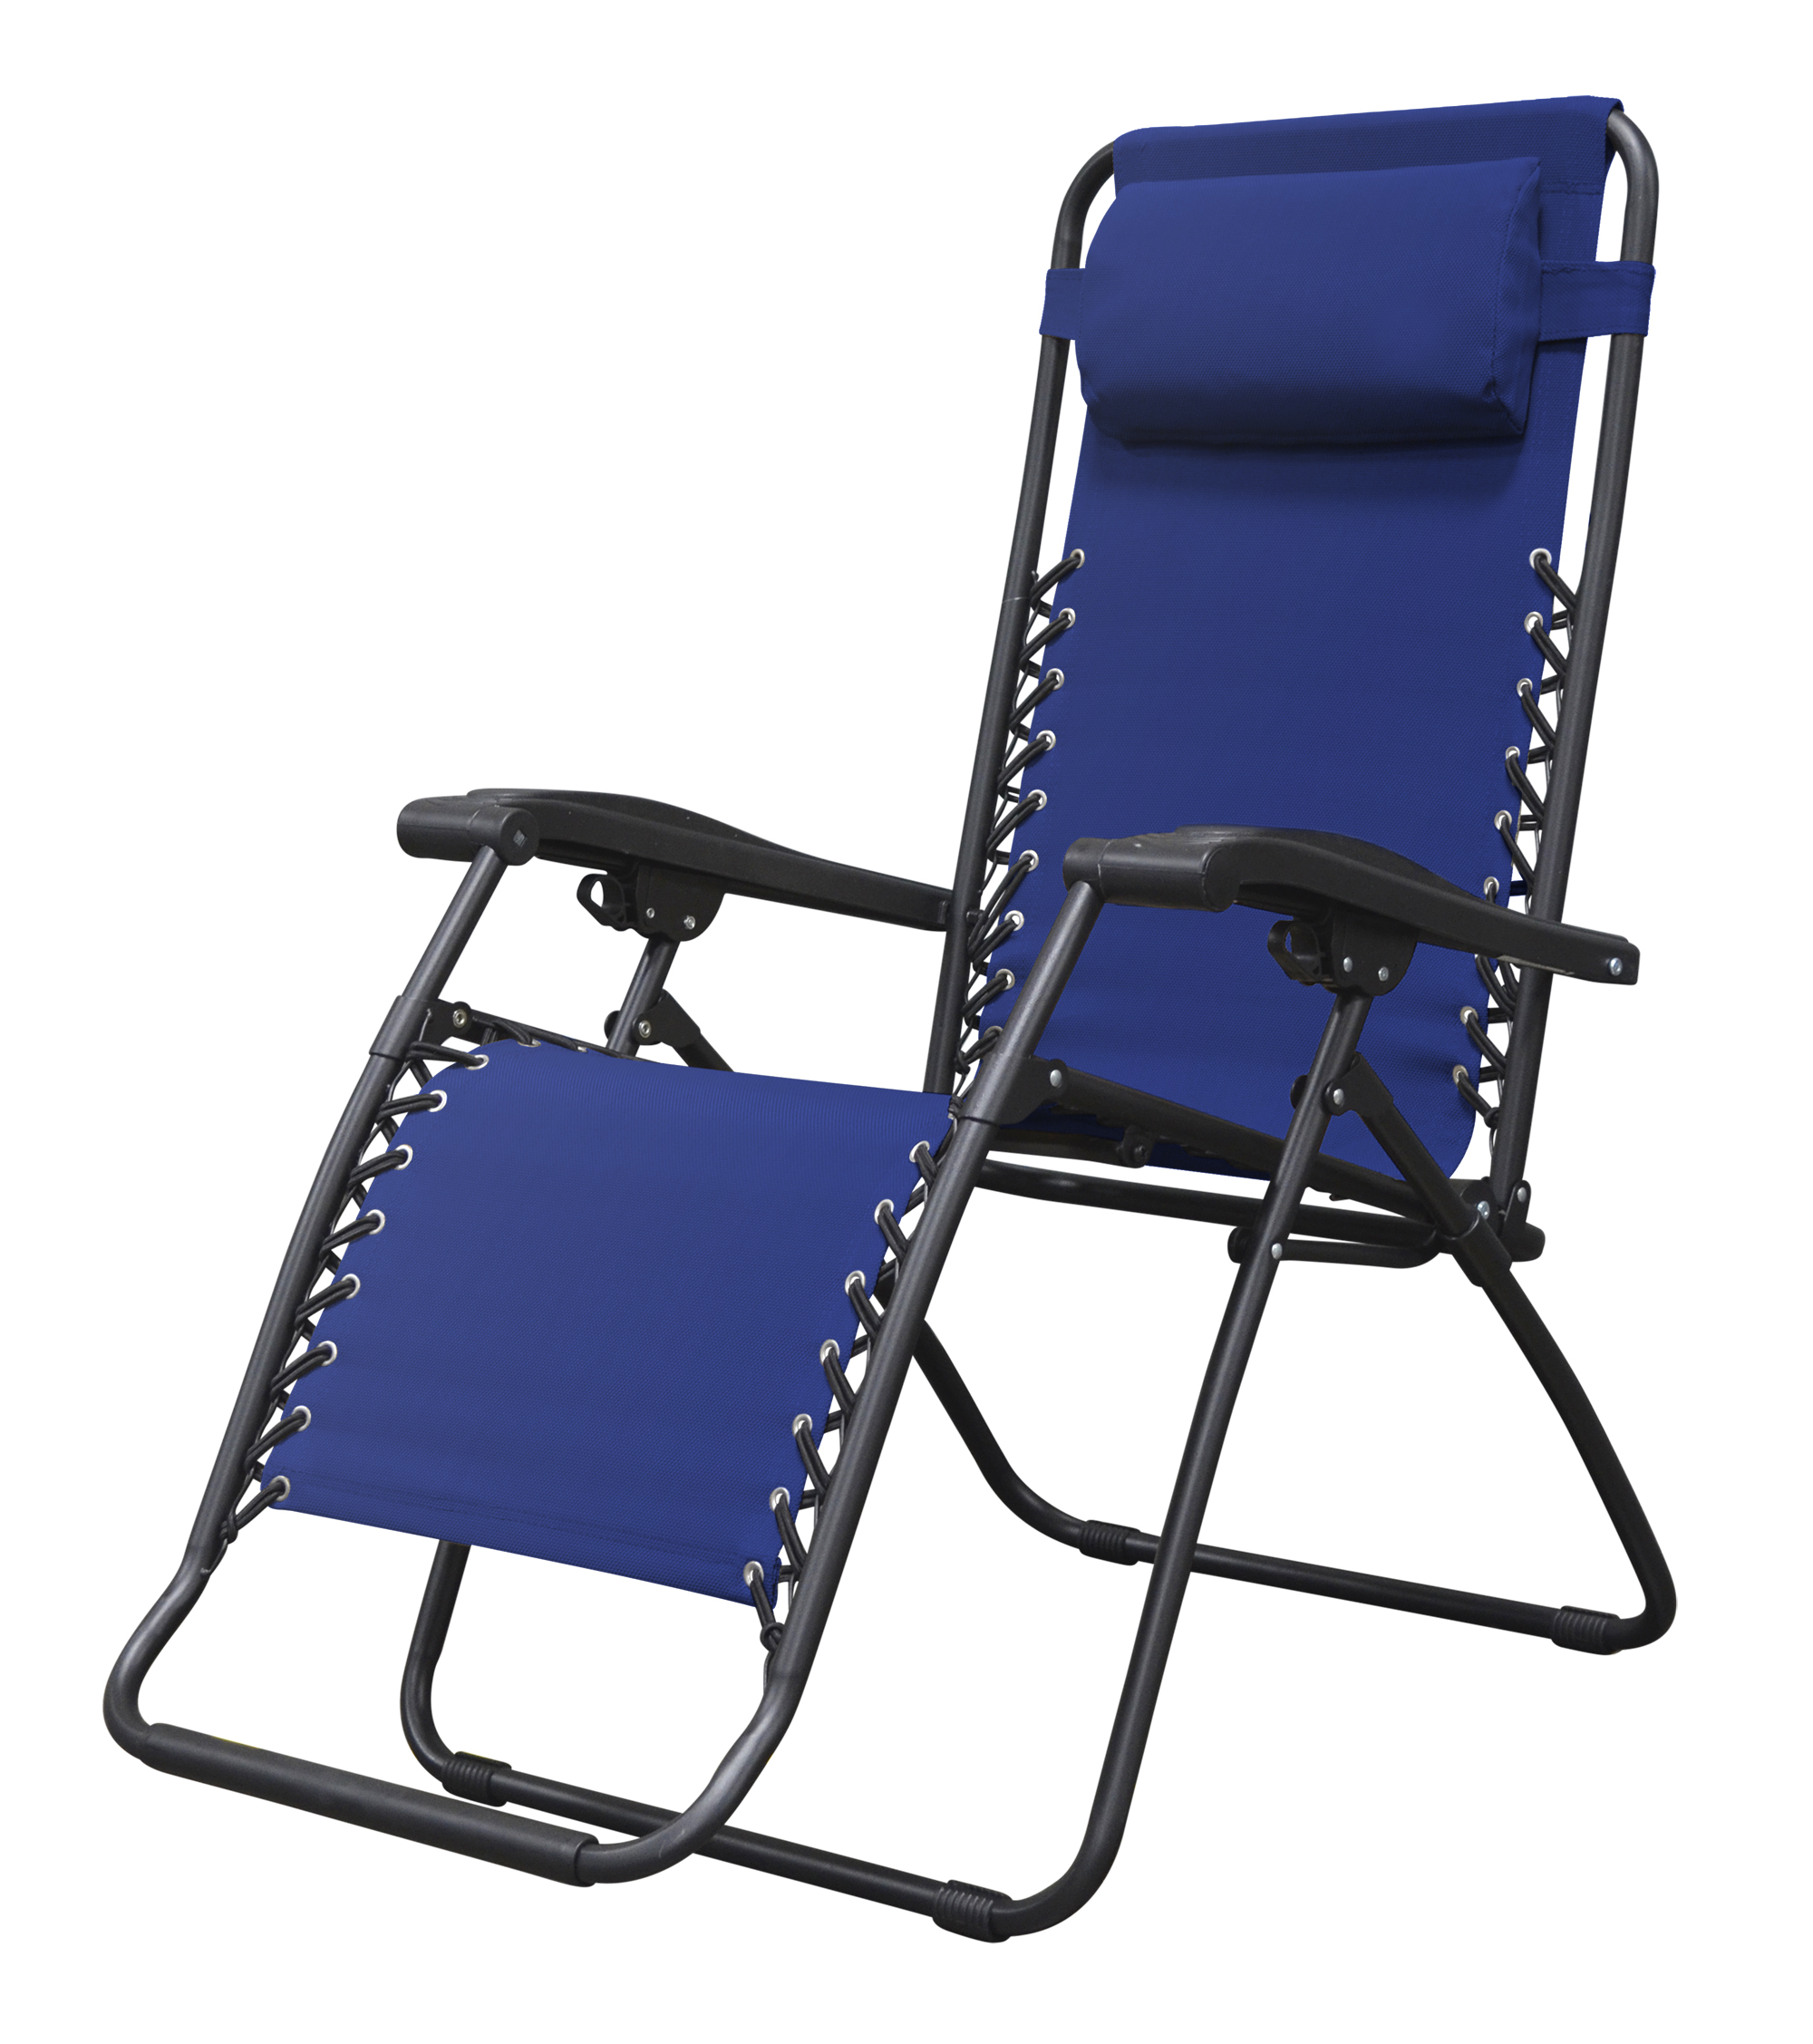 Caravan Sports Zero Gravity Chair, Multiple Colors   Walmart.com